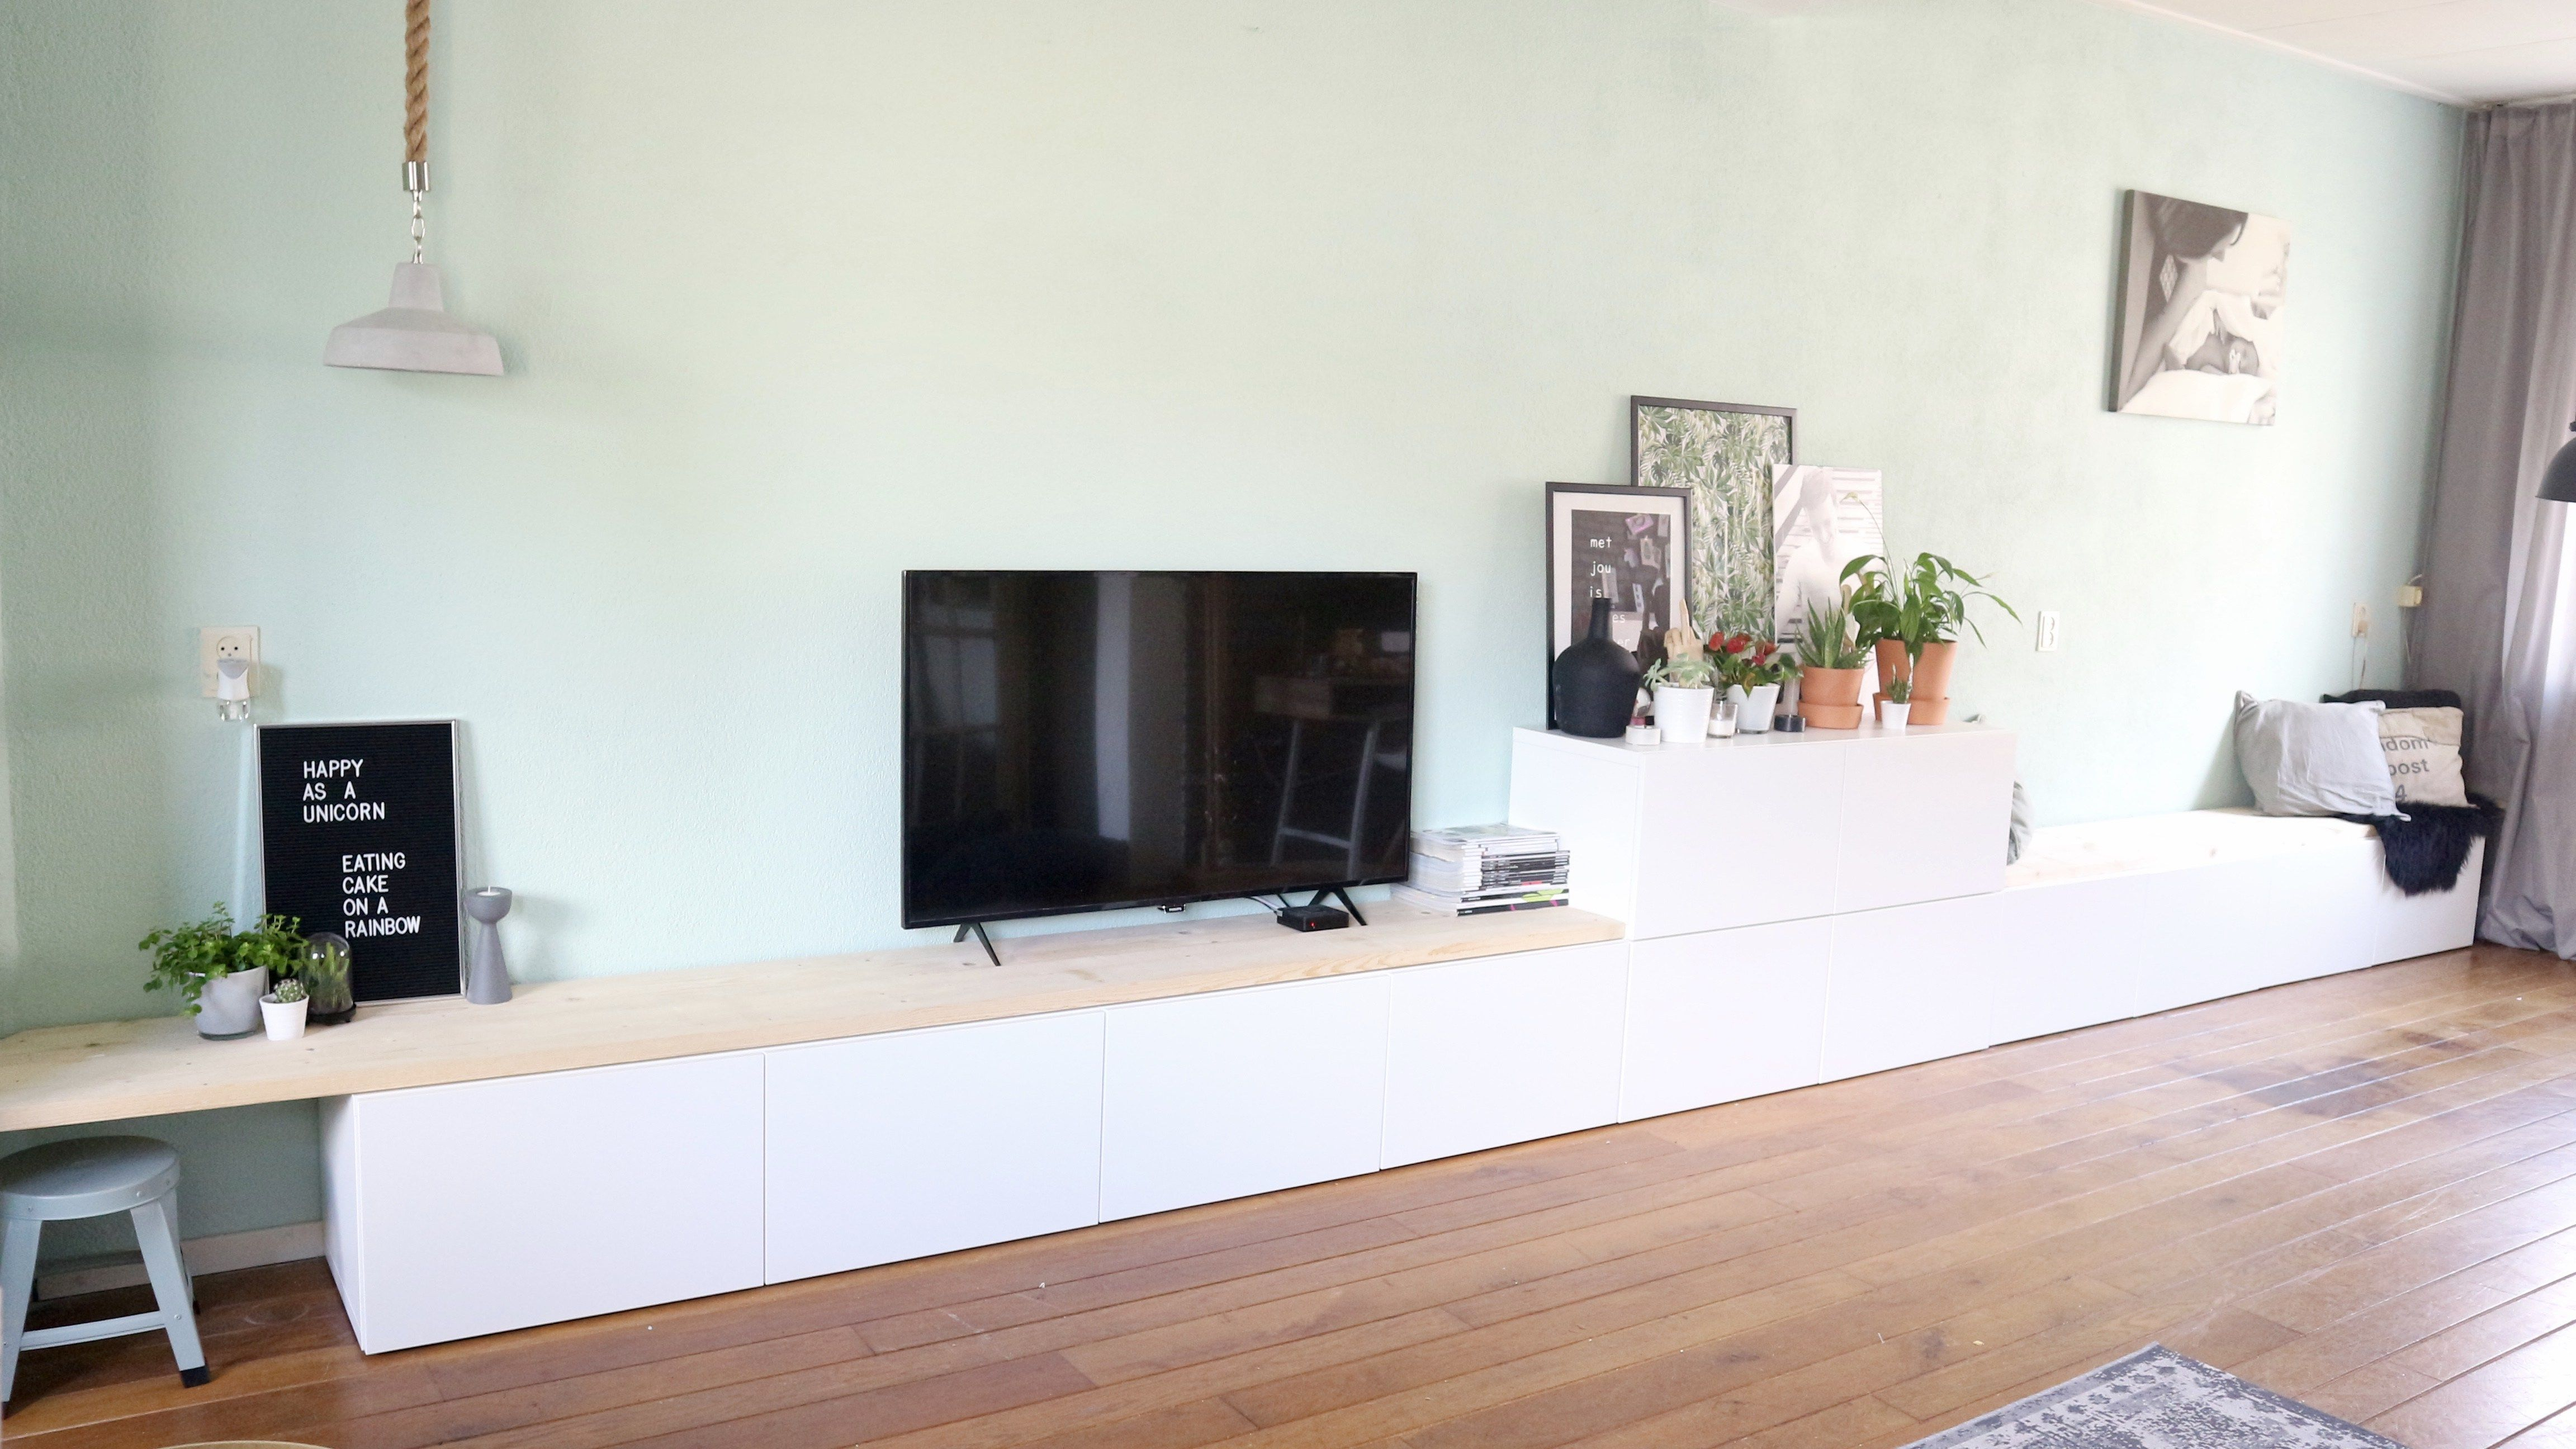 Ikea Tv Tafel : Ikea besta hack ikea diy tv meubel tv kast eetbank zitbank